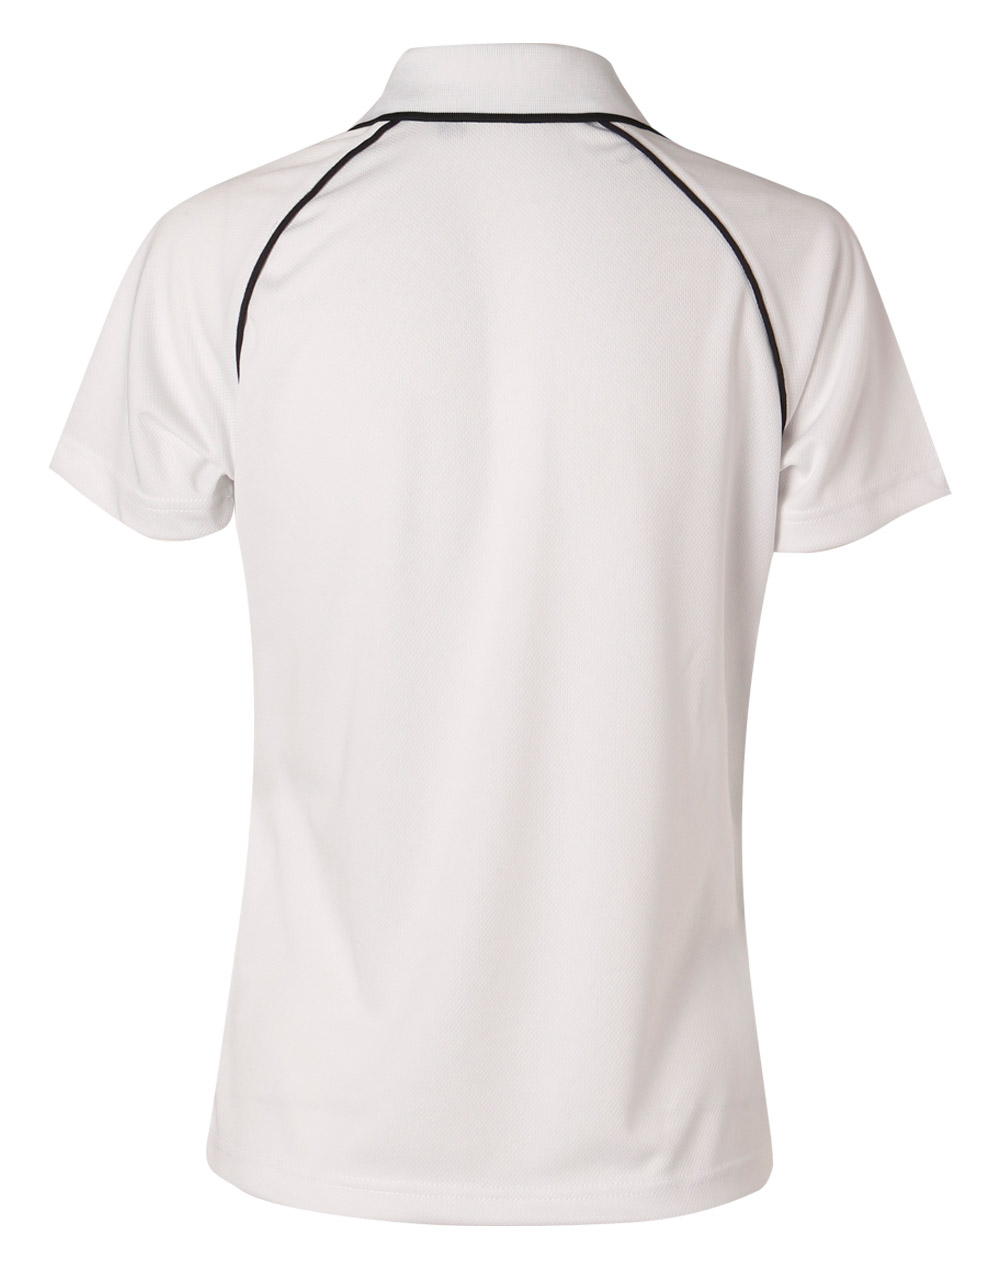 https://s3-ap-southeast-1.amazonaws.com/ws-imgs/POLOSHIRTS/PS19_White.Navy_Back.jpg